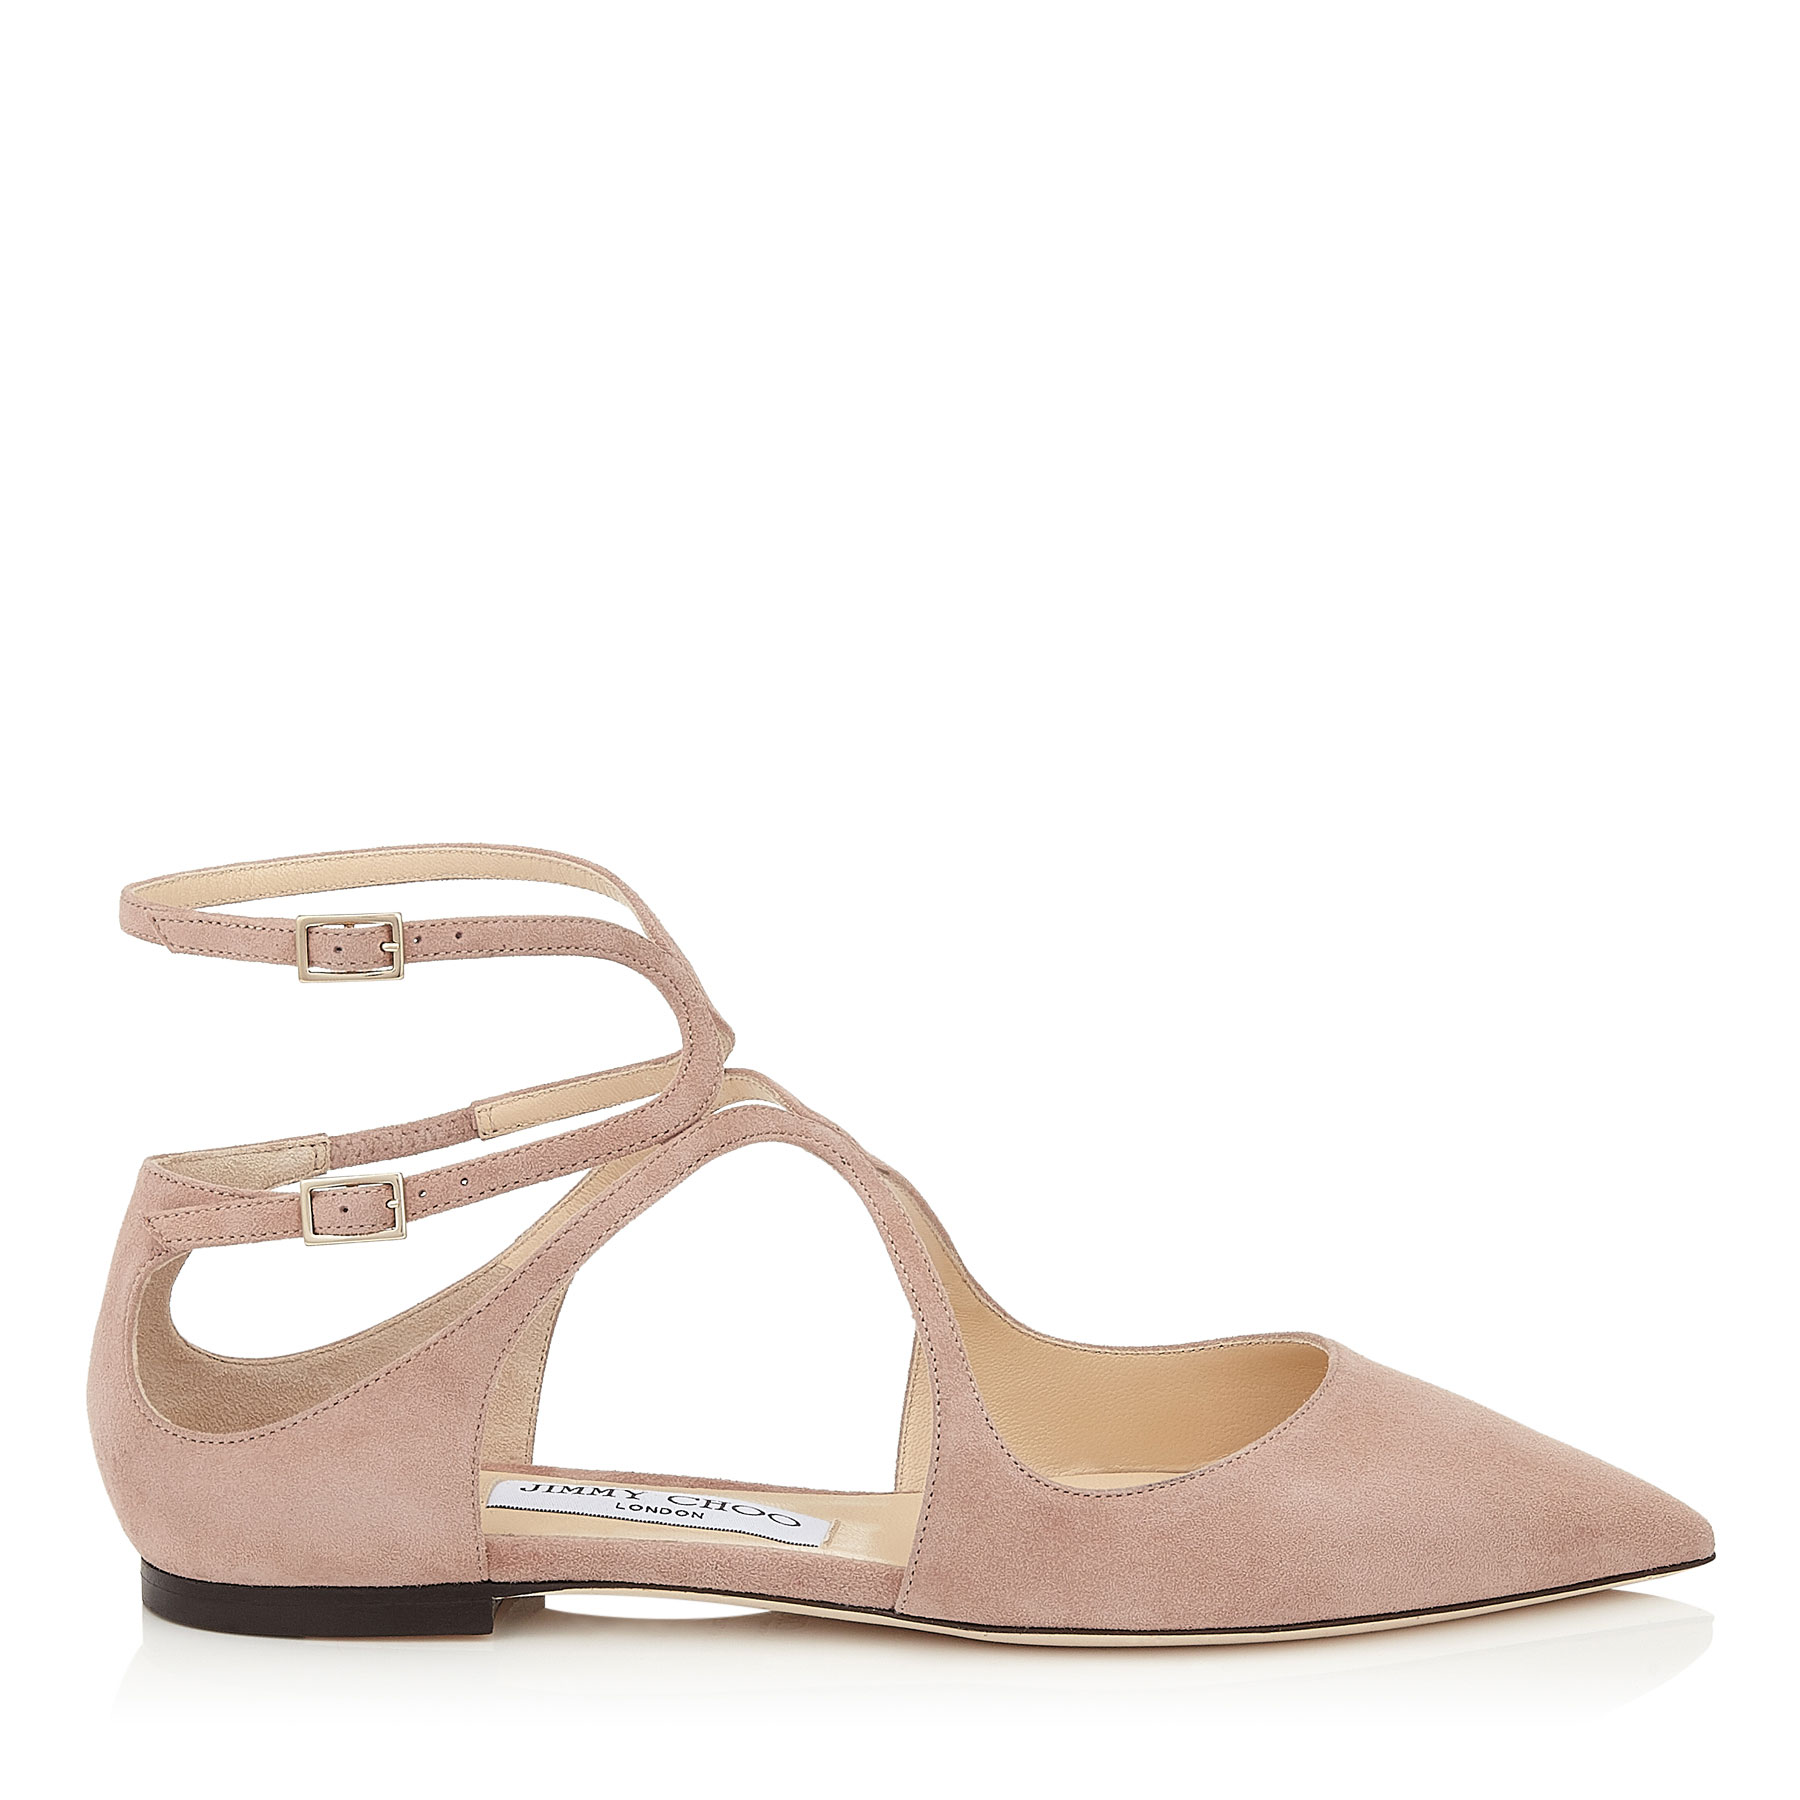 LANCER FLAT Ballet Pink Suede Pointy Toe Flats by Jimmy Choo